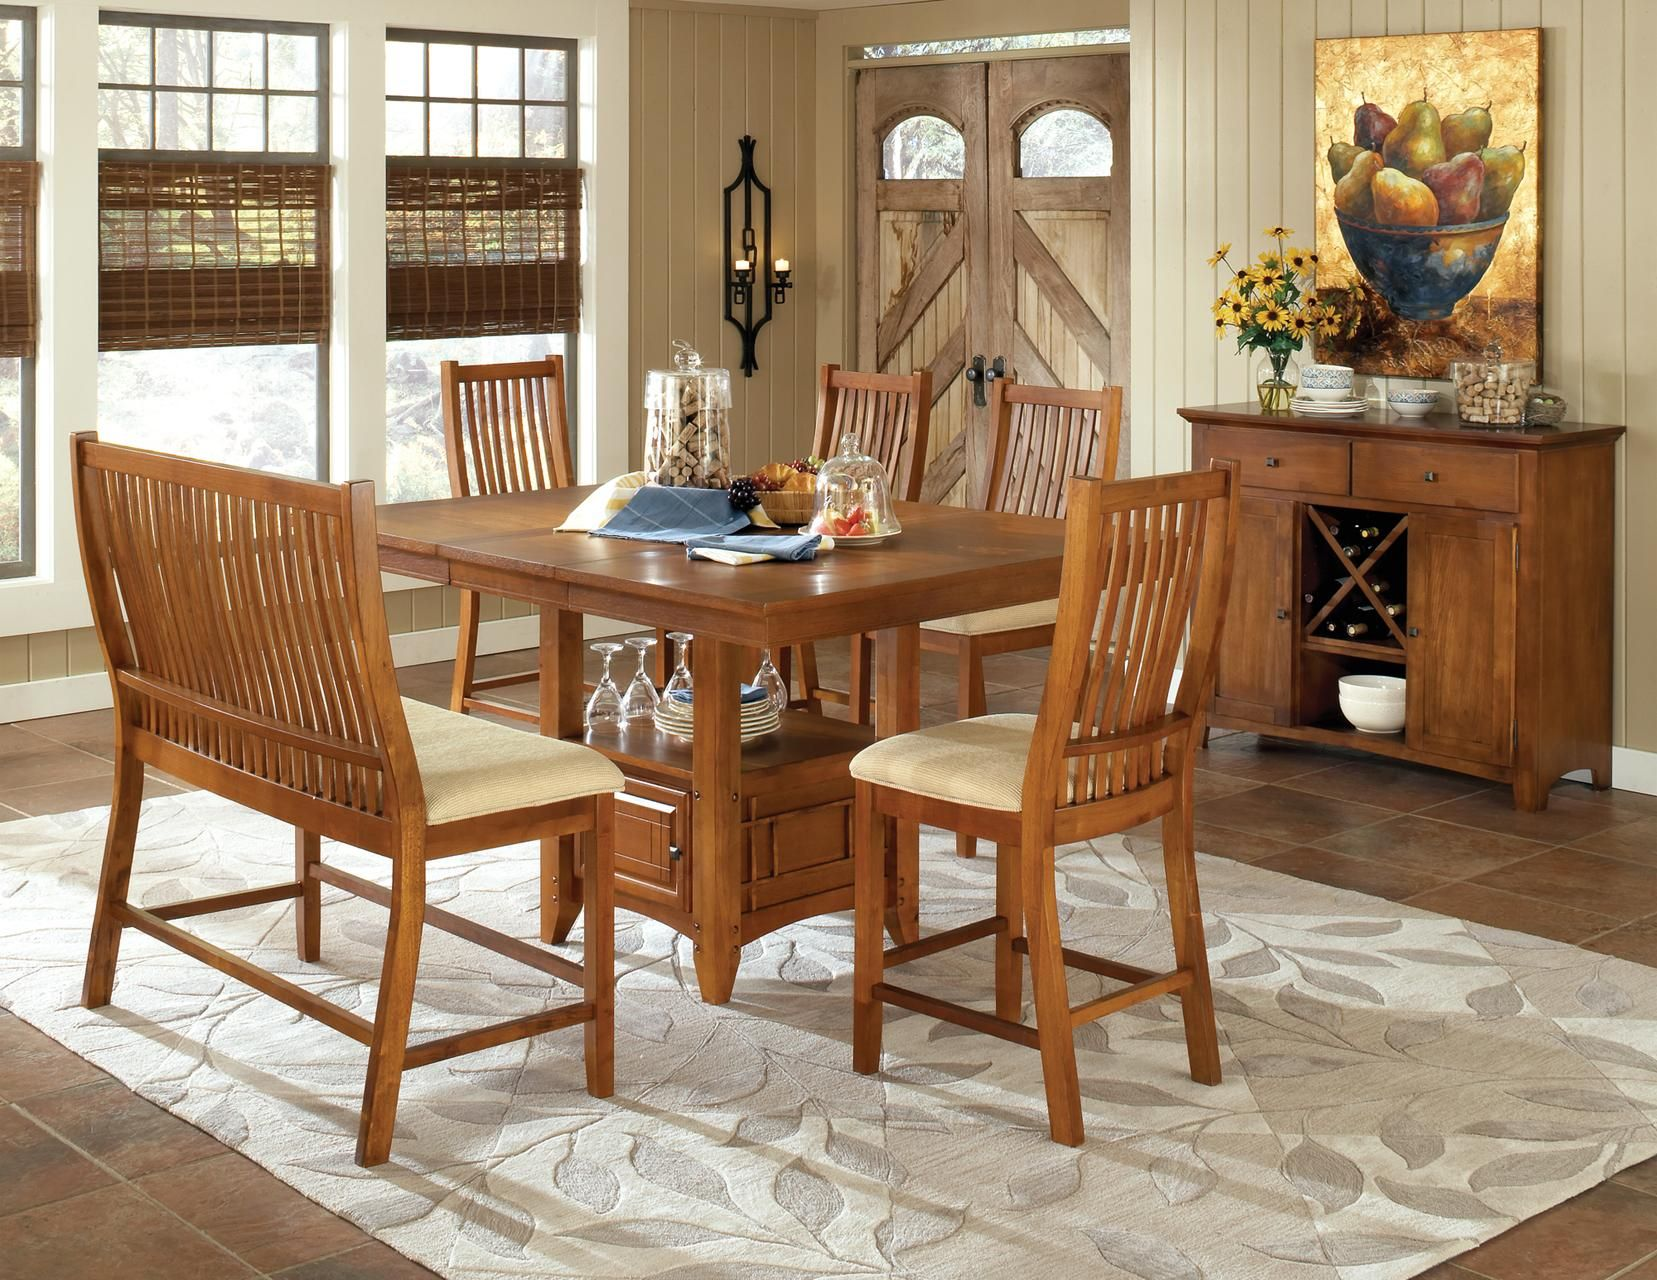 Explore Counter Height Dining Table and more